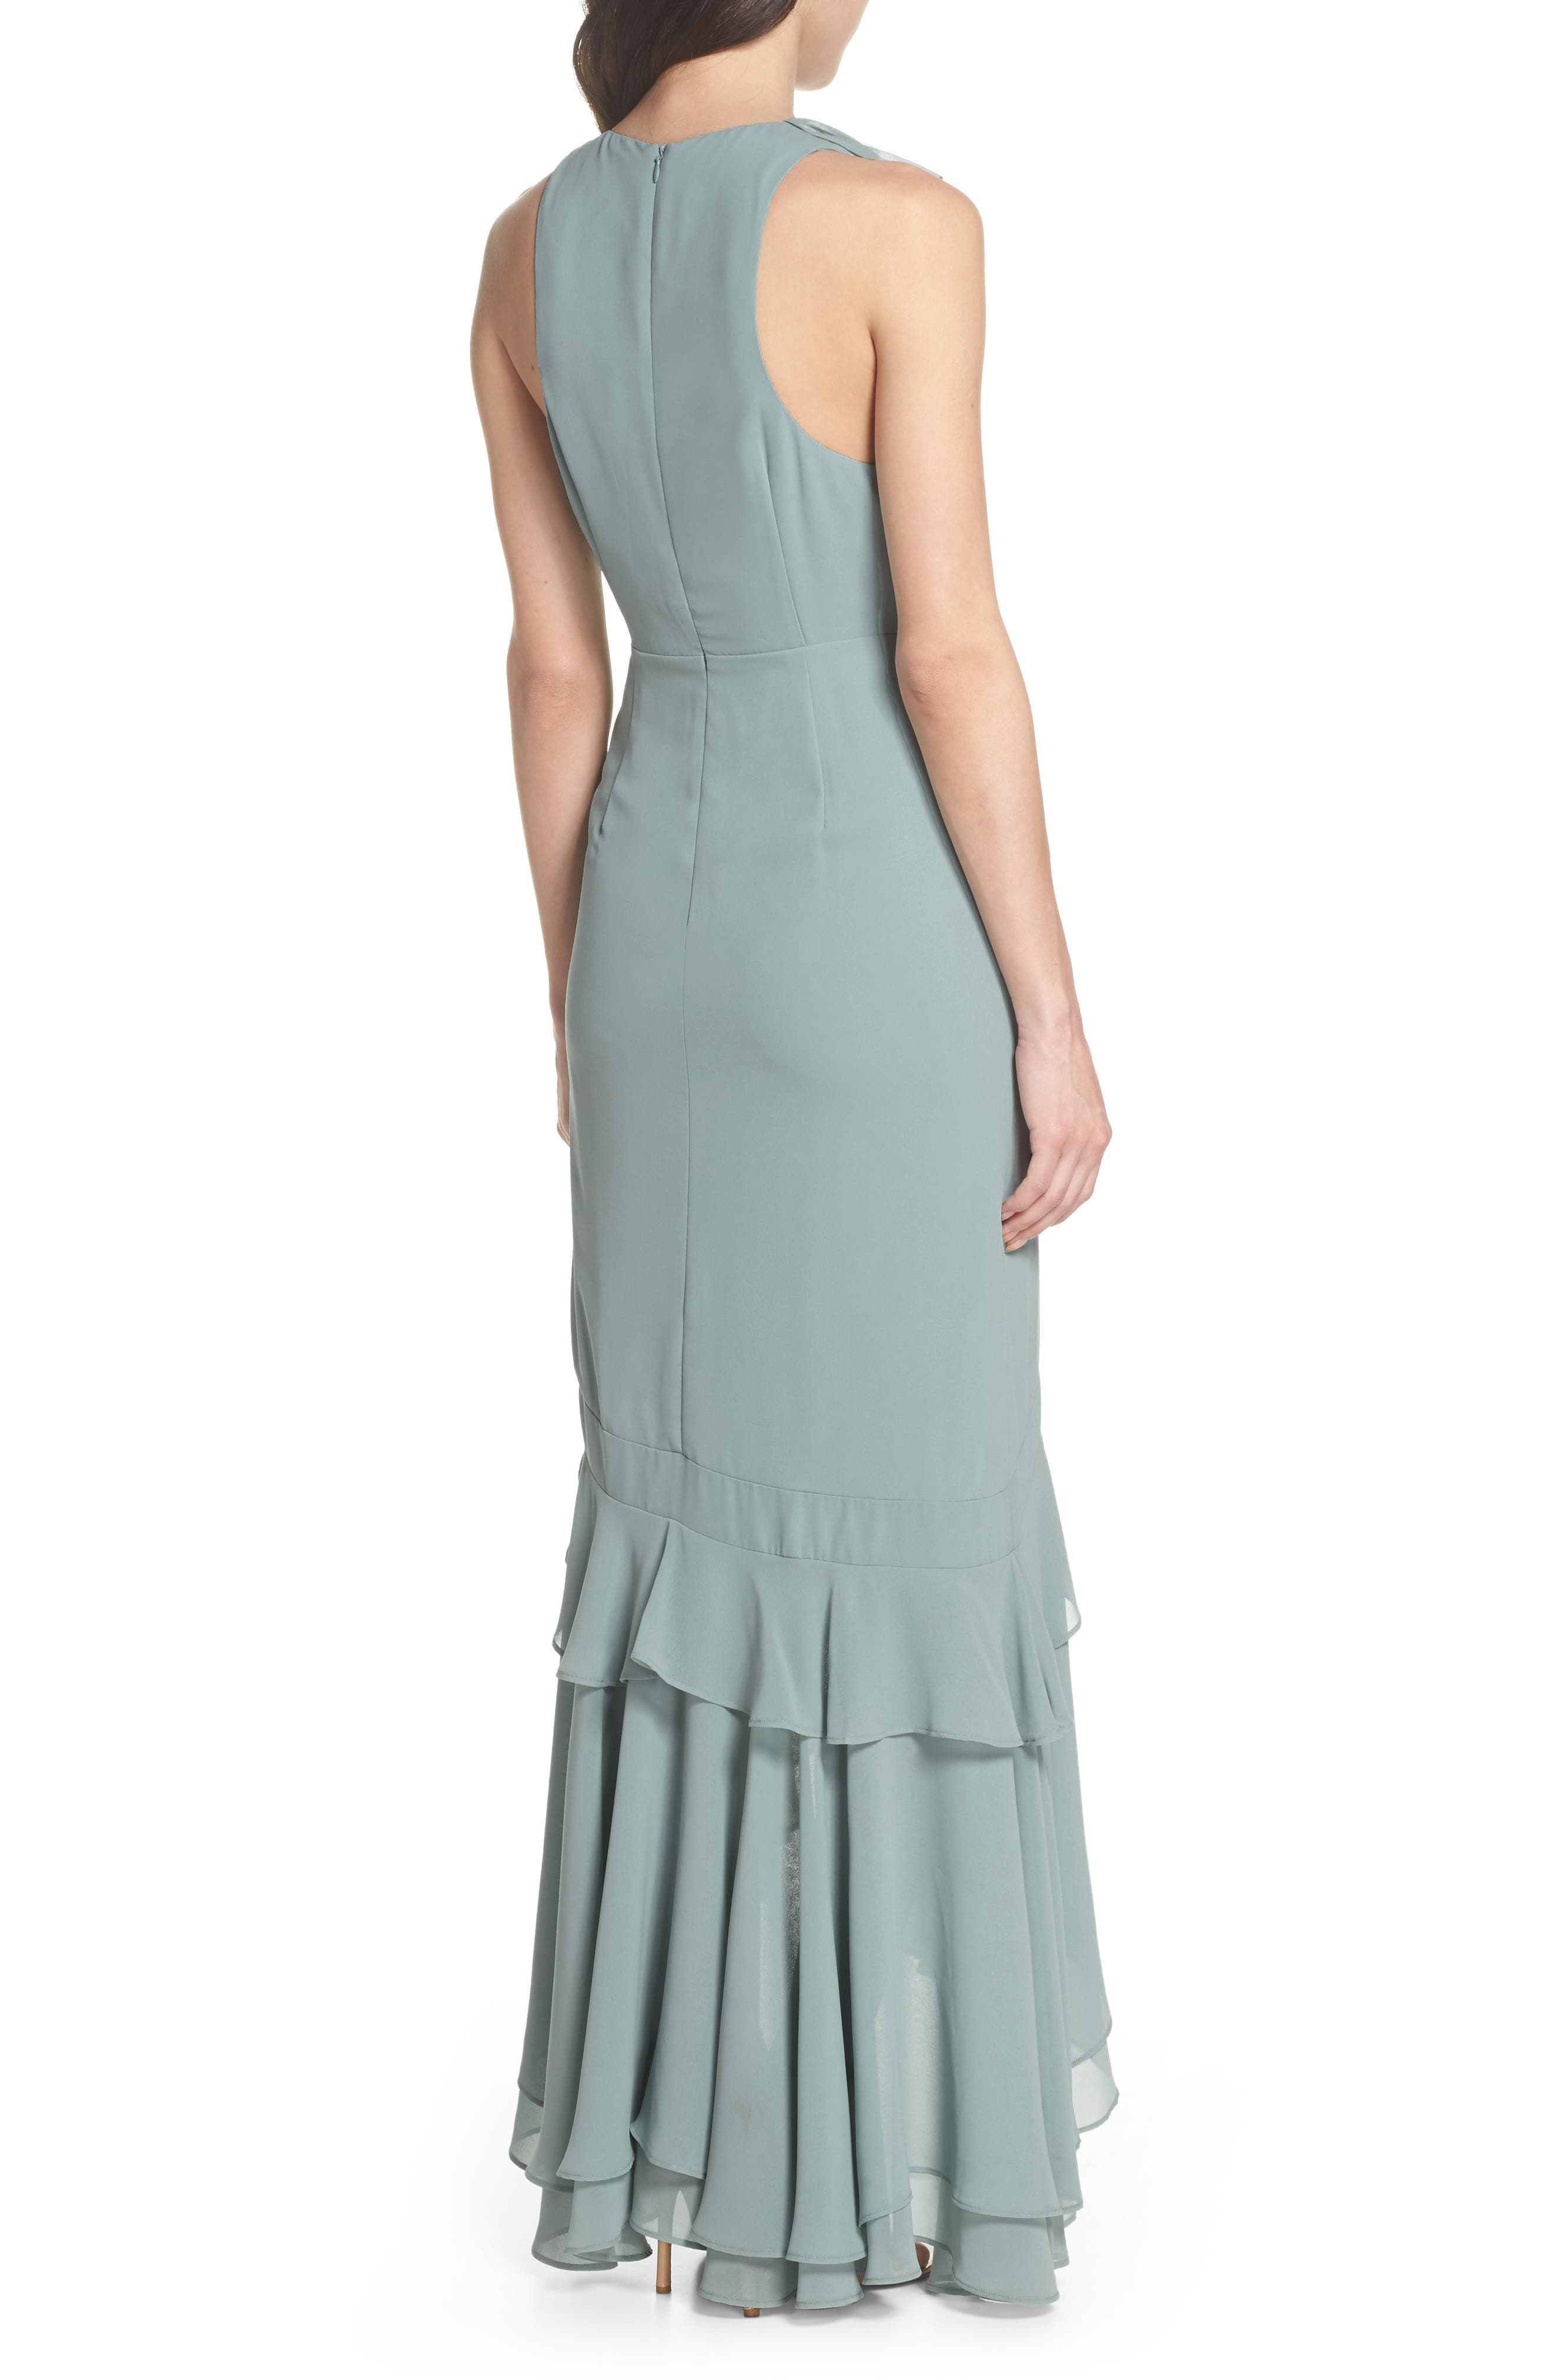 C/MEO Be About You Ruffle Gown,                             Alternate thumbnail 2, color,                             330